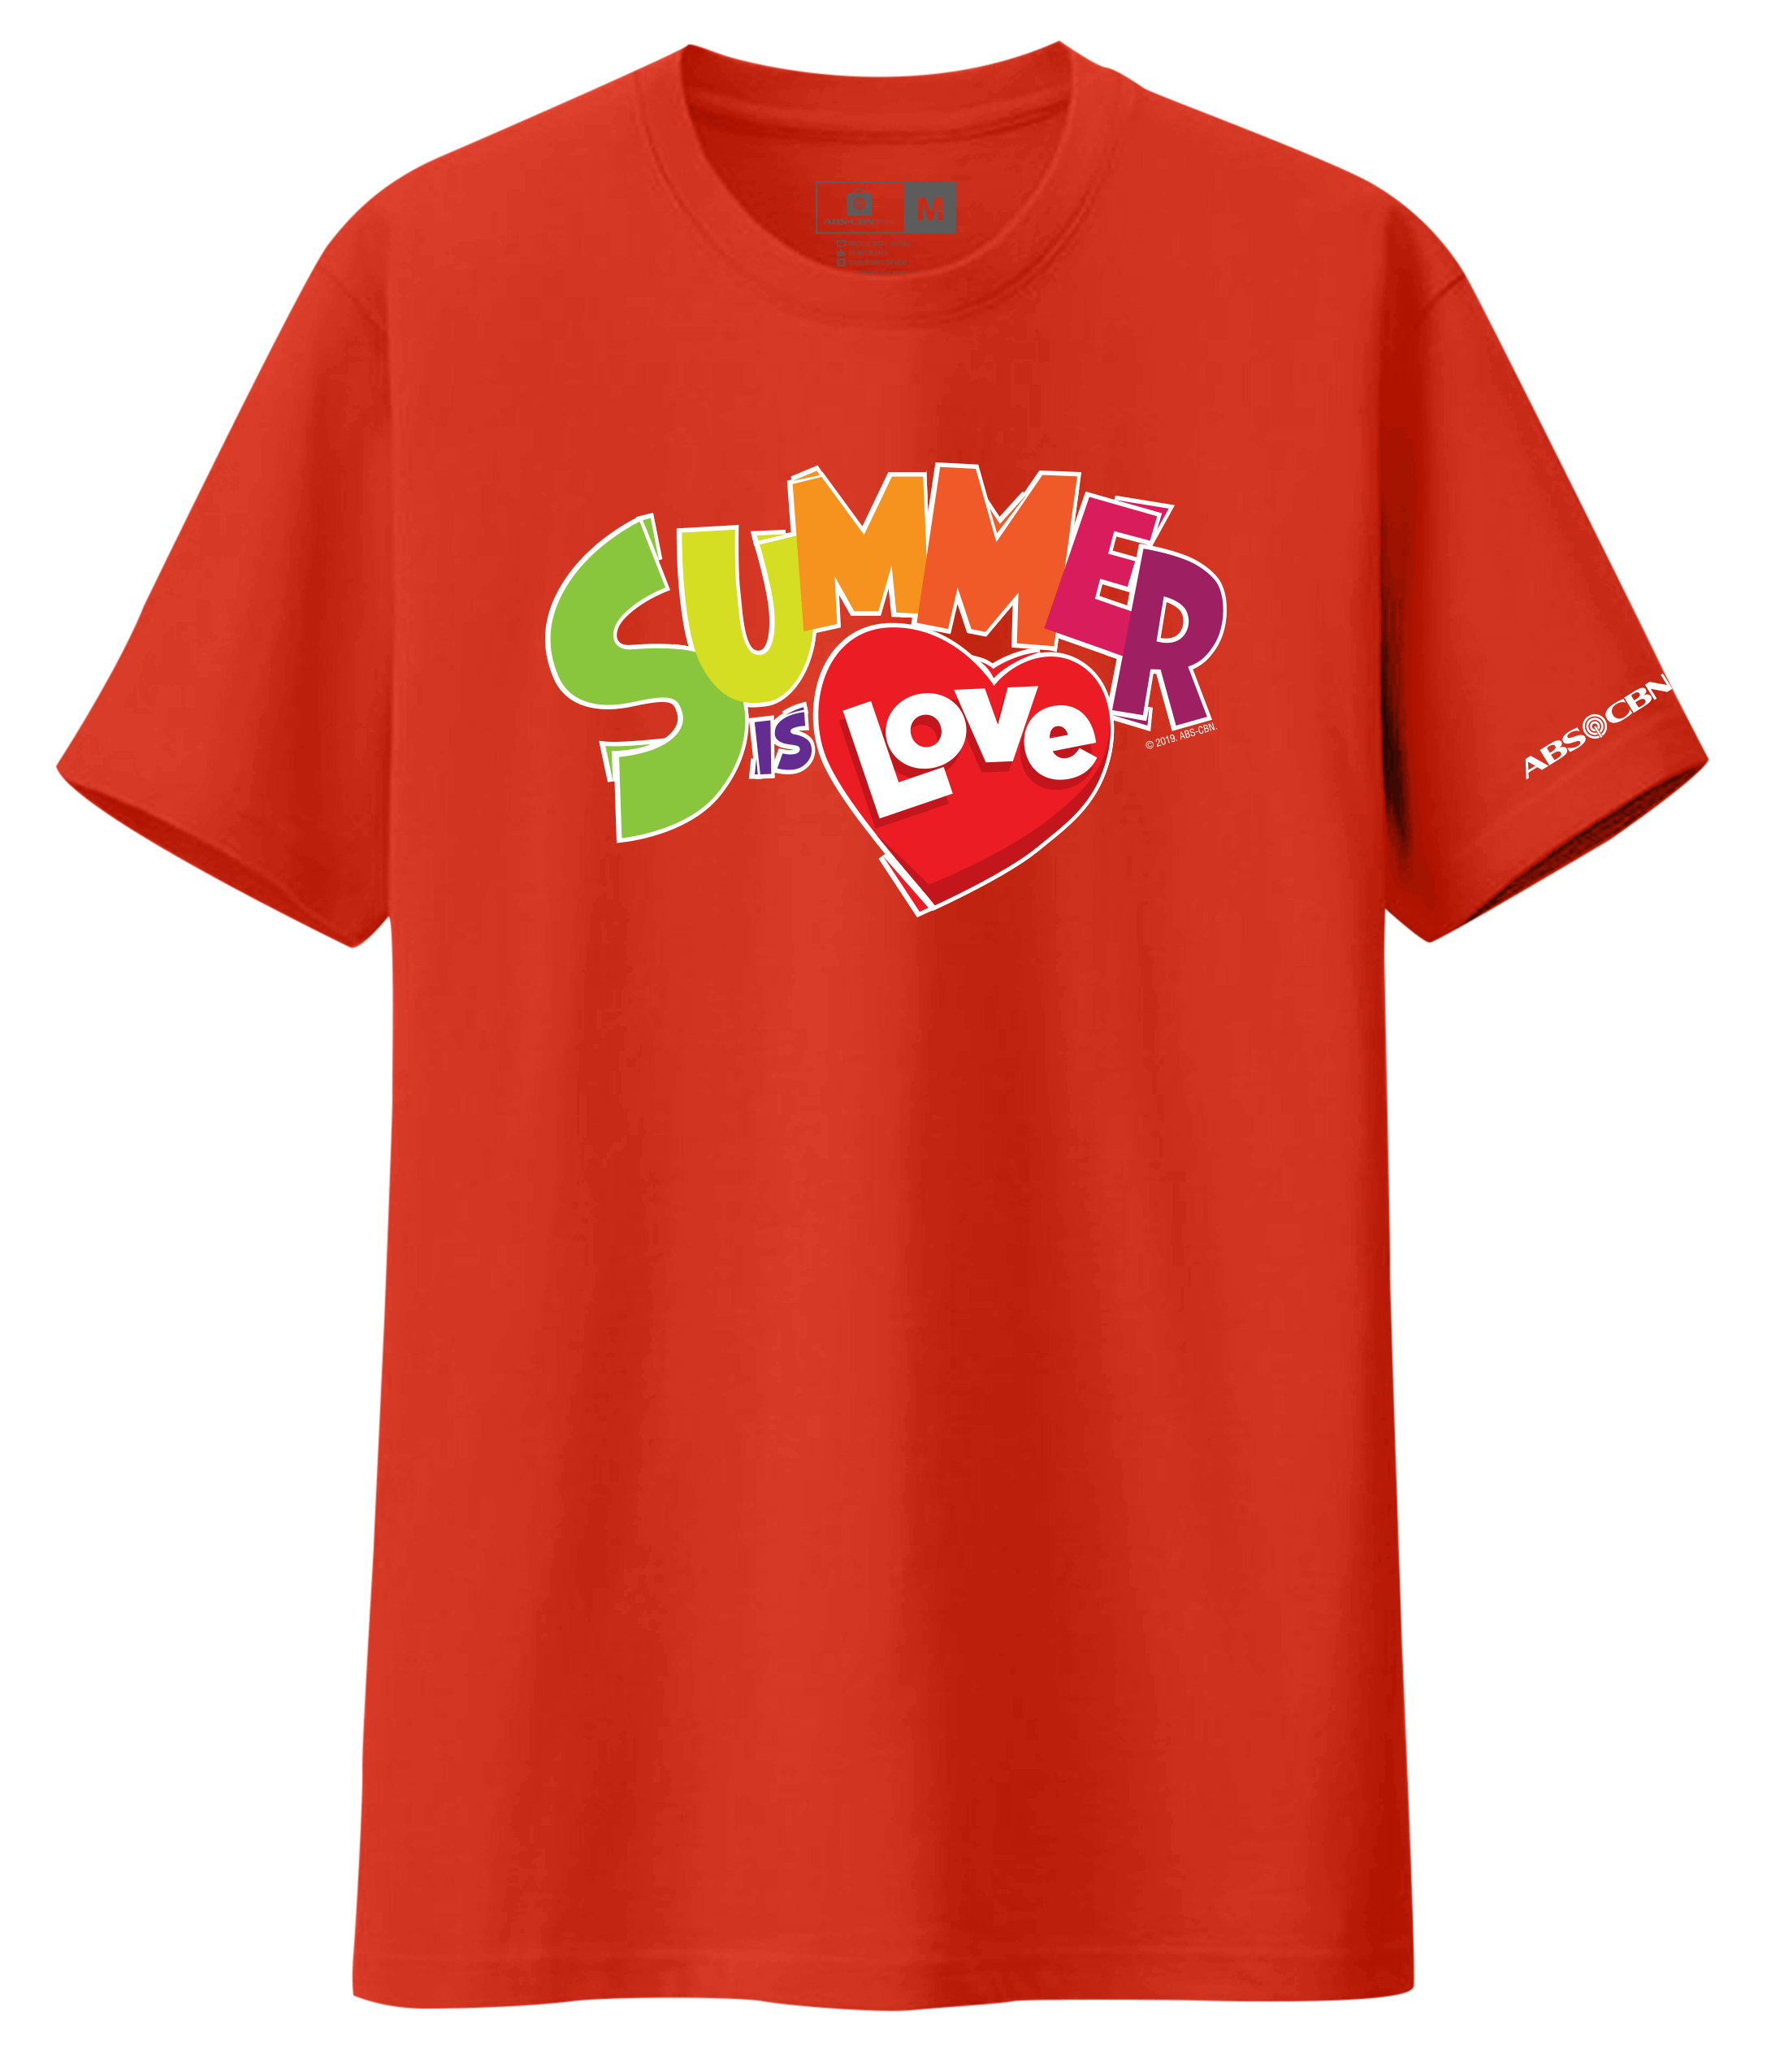 Kapamilya summer of love - Red